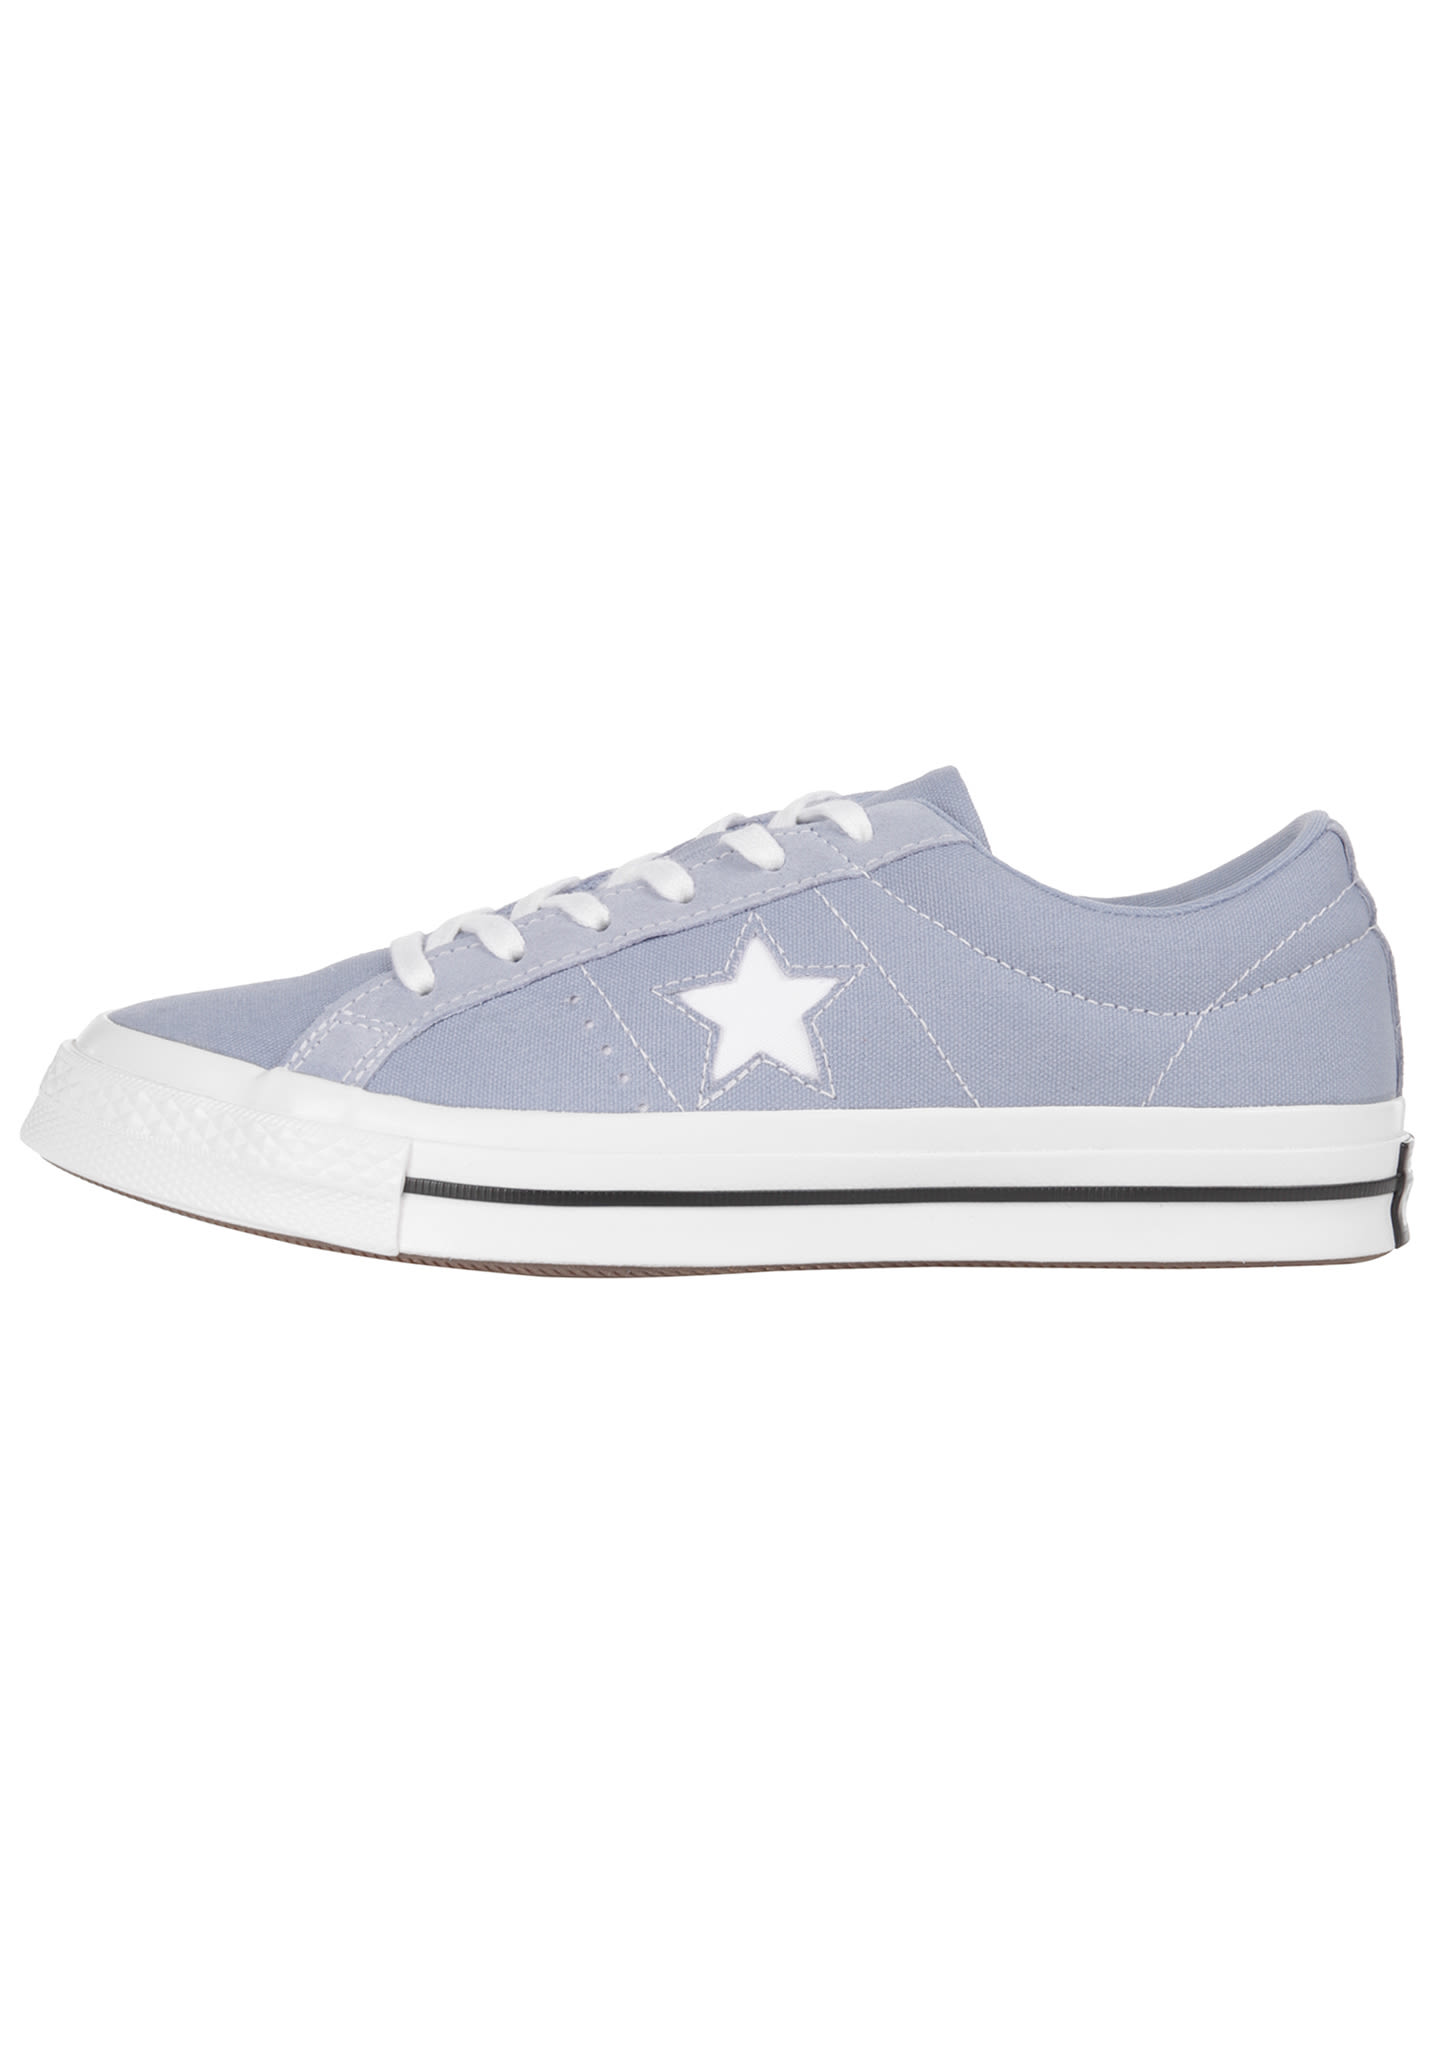 e520b14d853 Converse One Star Ox - Sneakers for Women - Blue - Planet Sports